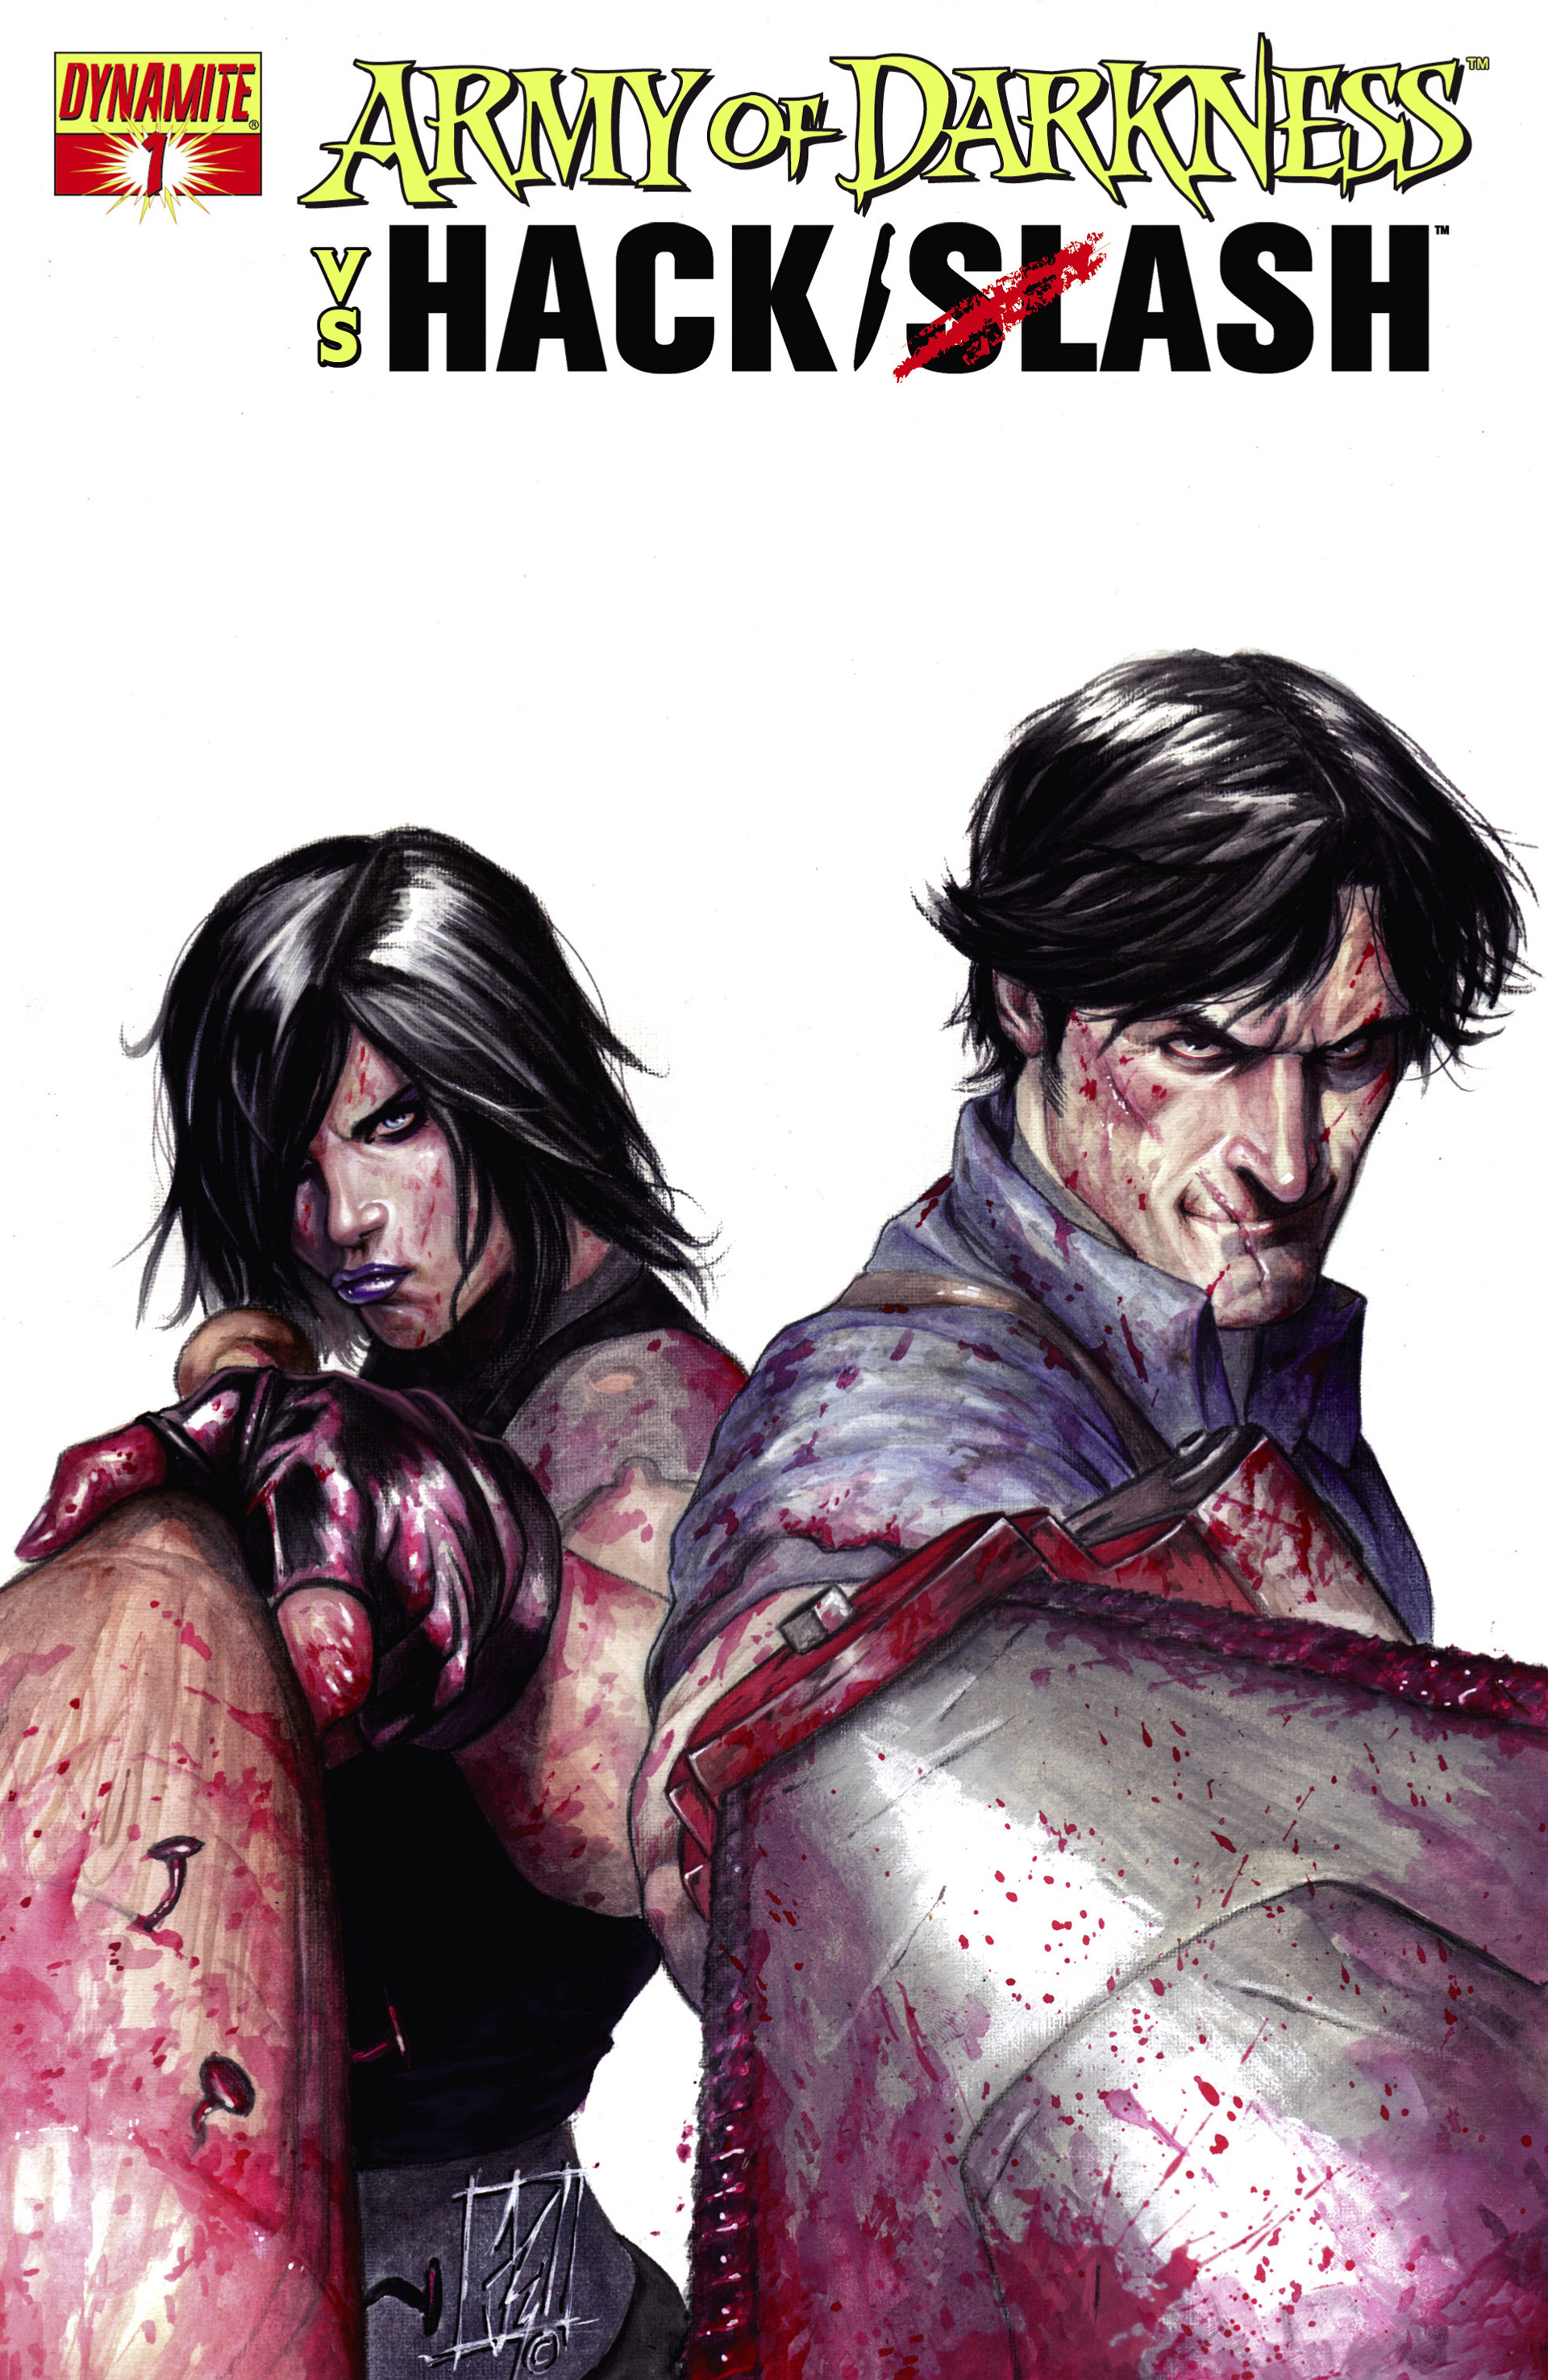 Read online Army of Darkness vs. Hack/Slash comic -  Issue #1 - 1